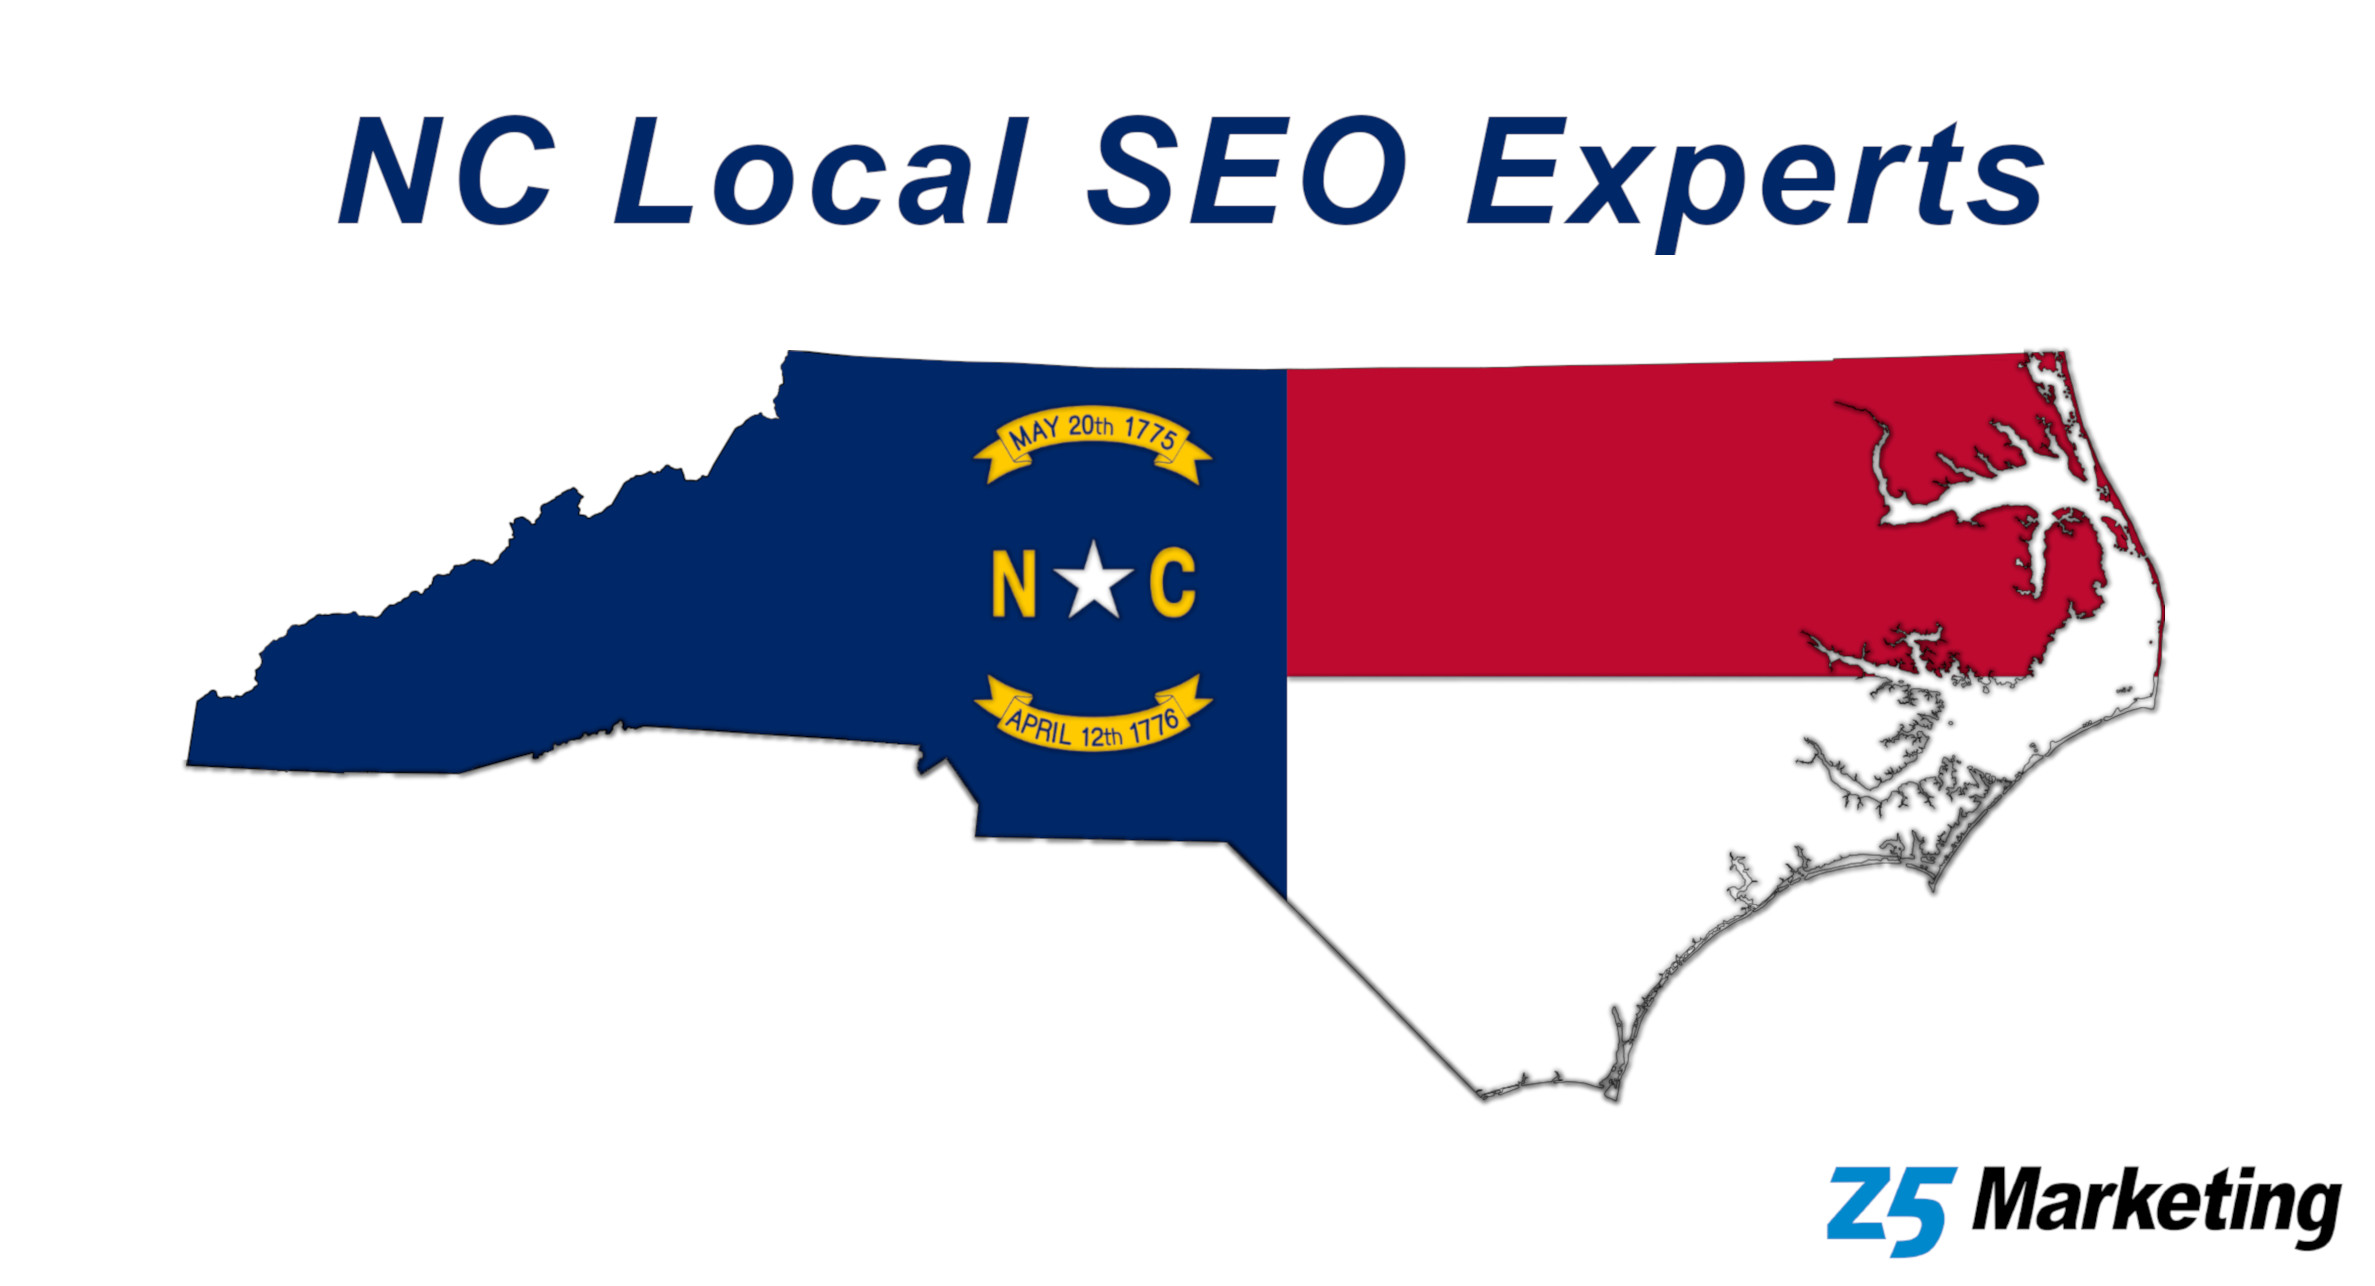 NC SEO experts